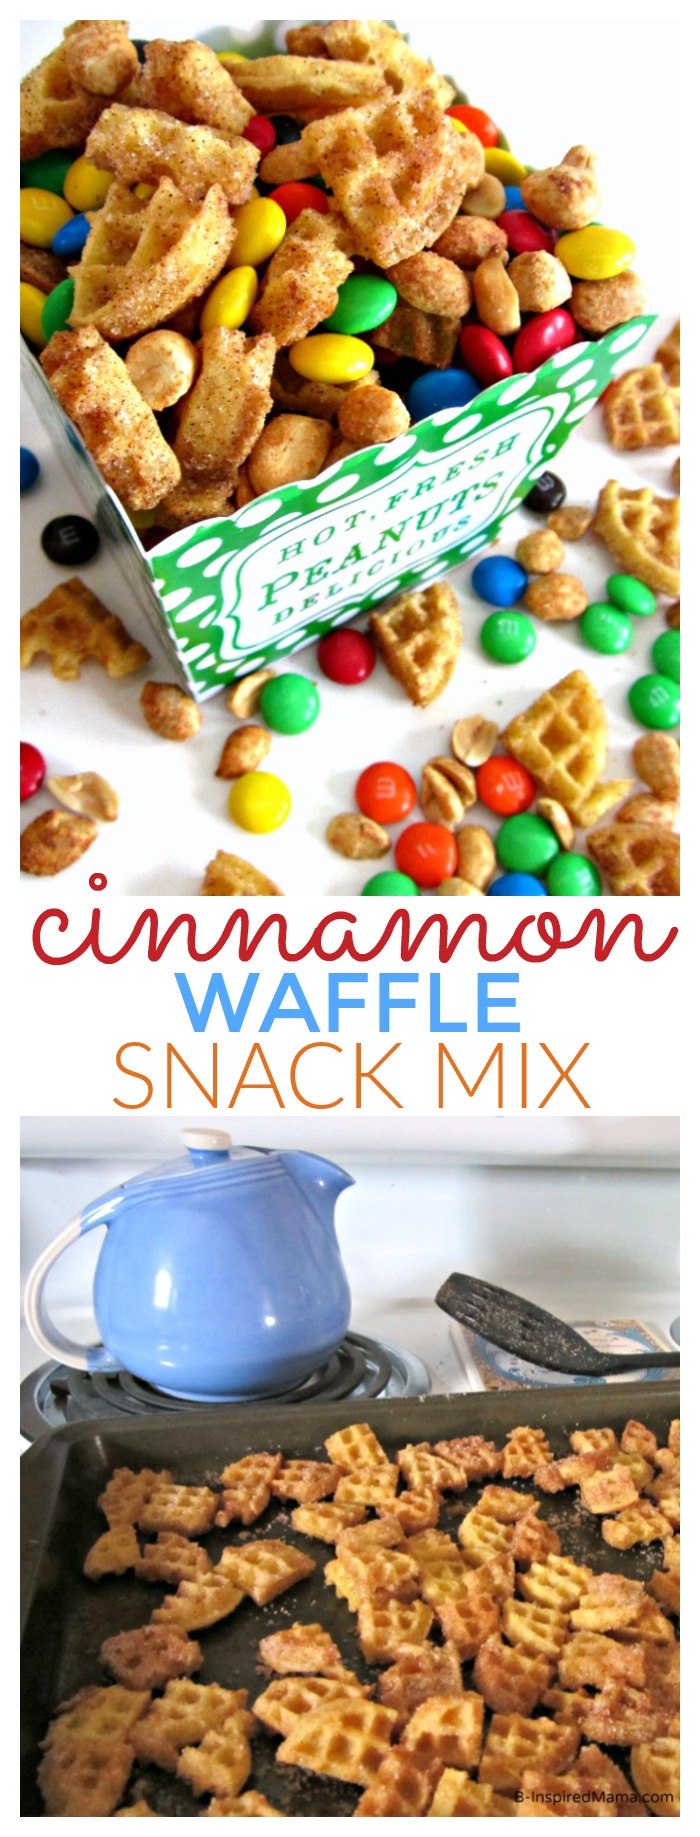 Easy and Yummy Cinnamon Waffle Snack Mix Recipe the Kids will LOVE